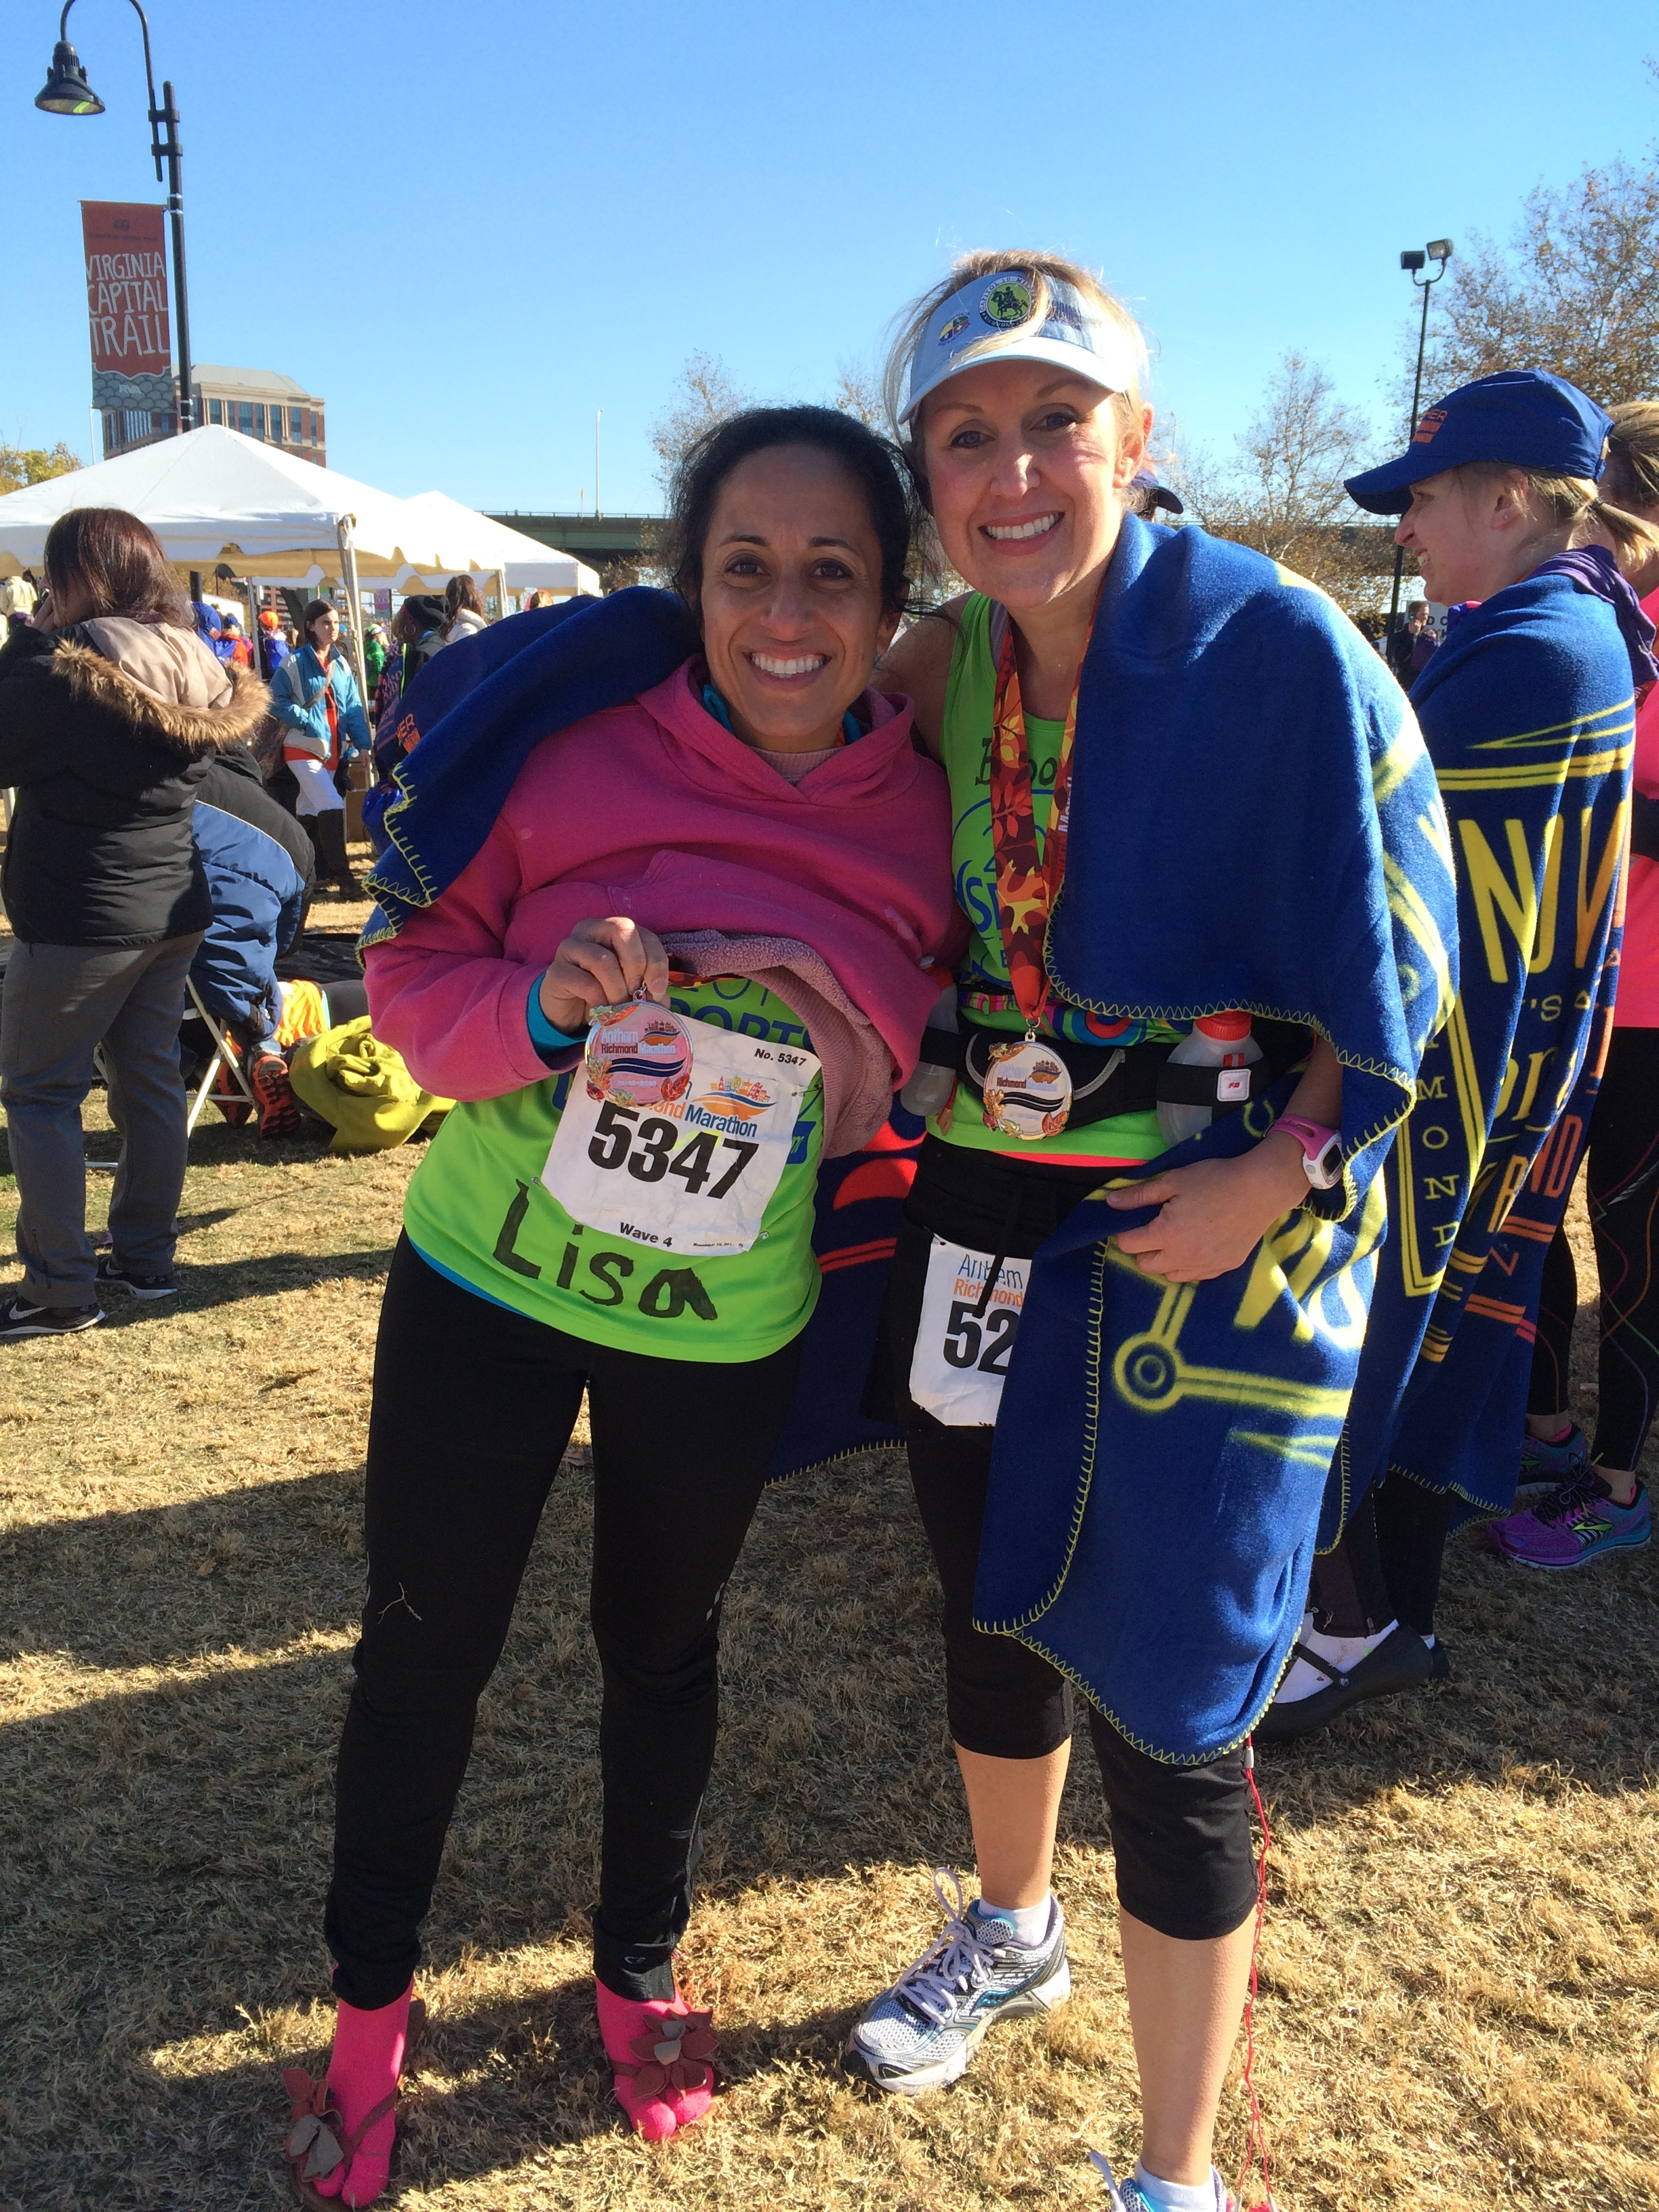 On November 15, 2014, I ran my first marathon with my dear friend Brooke. I completed the 26.2 miles in 3:56:55.